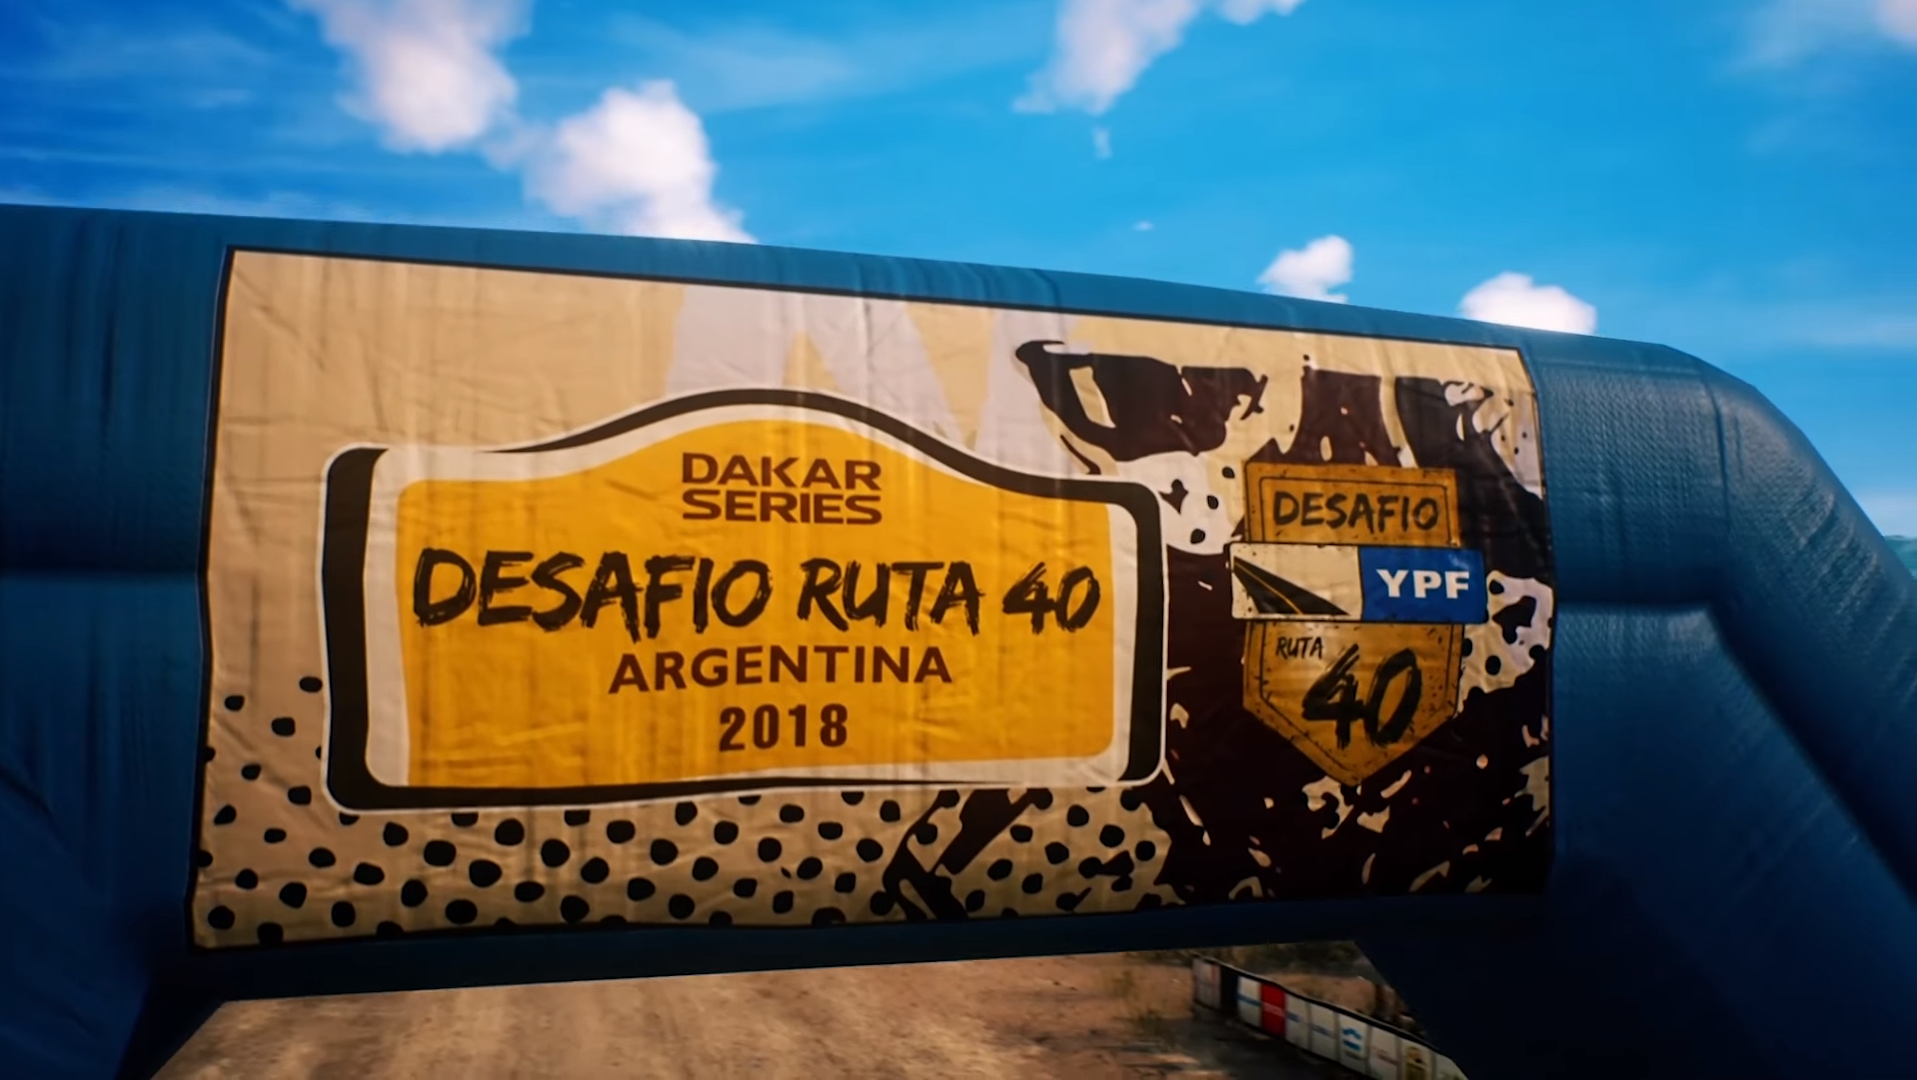 Dakar 18 first DLC pays tribute to series